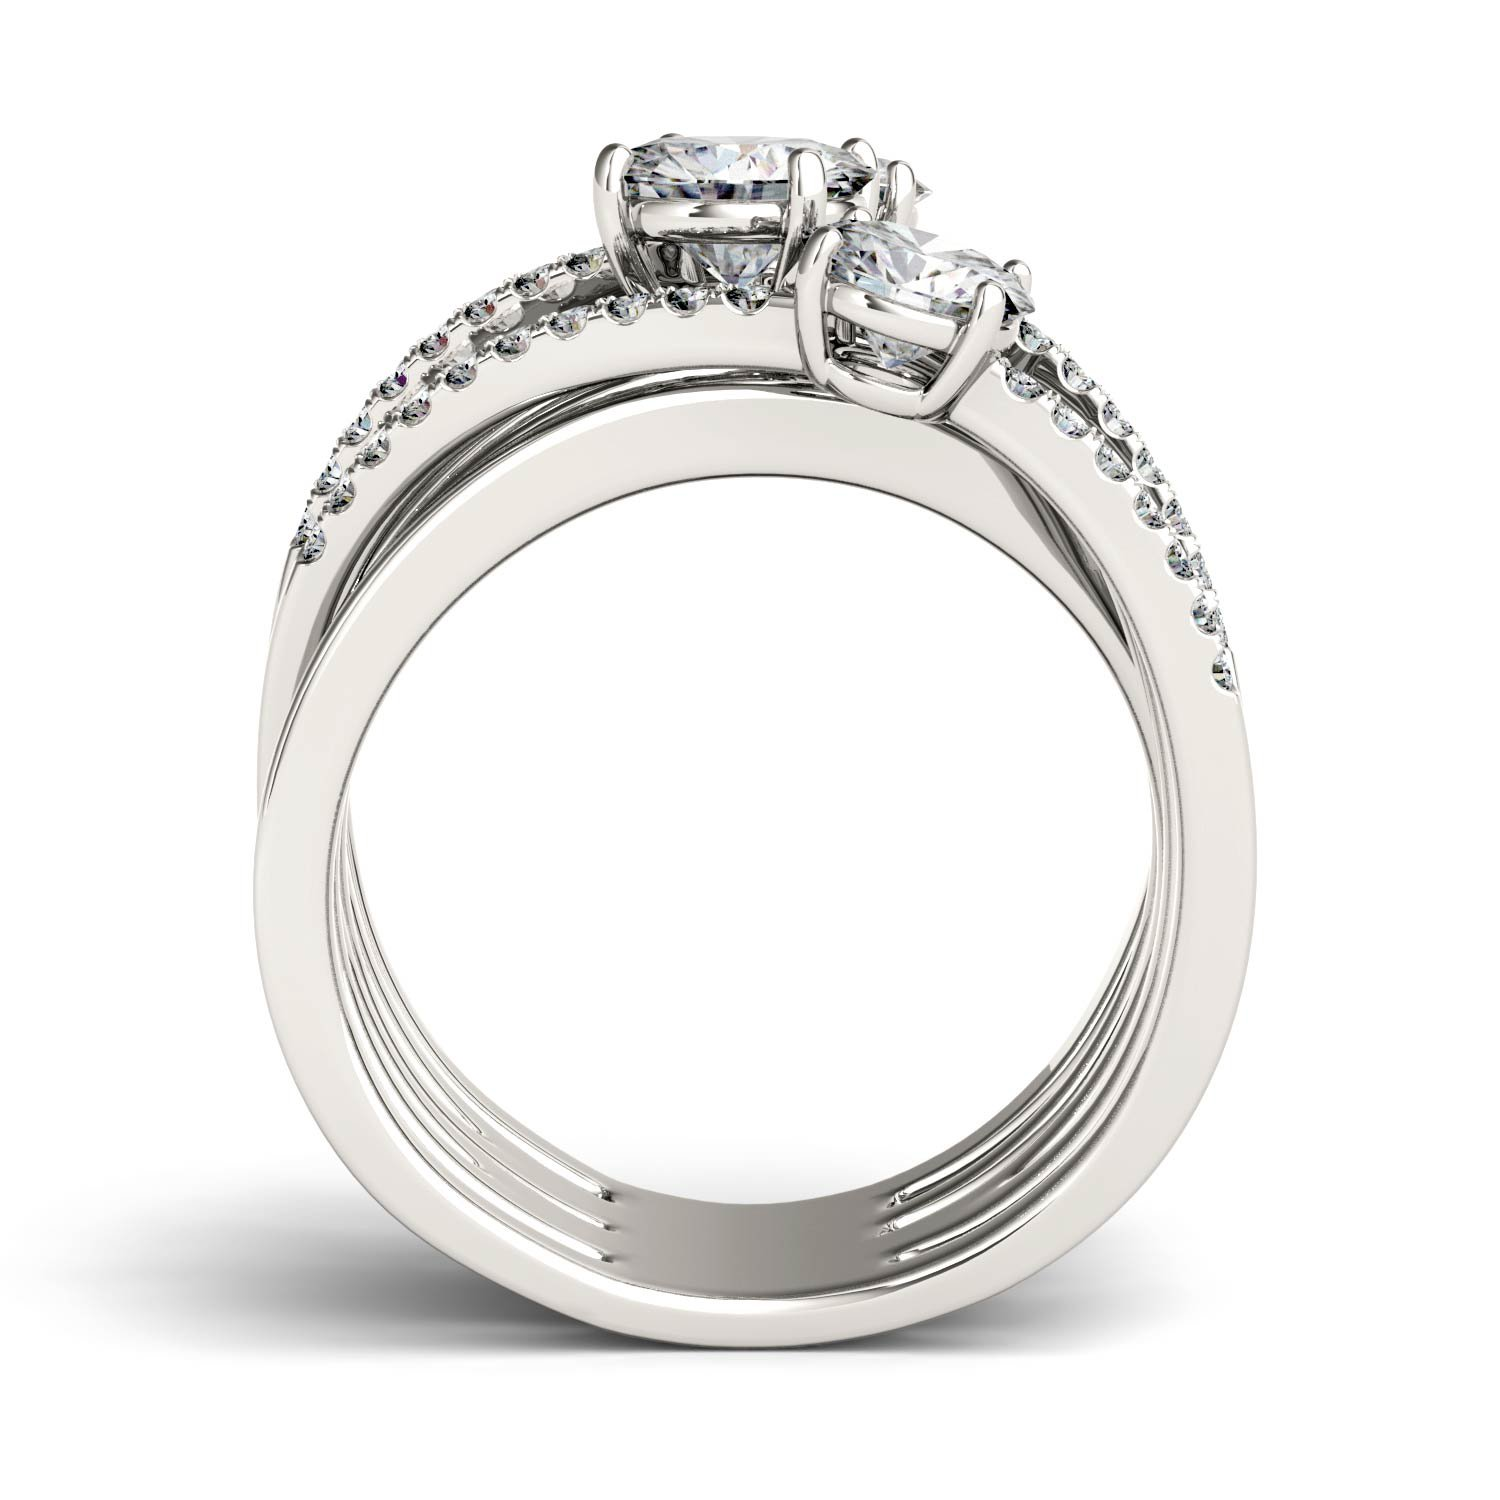 Forever Brilliant Round 6.0mm Moissanite Band Style Ring-size 6, 2.28cttw DEW By Charles & Colvard by Charles & Colvard (Image #3)